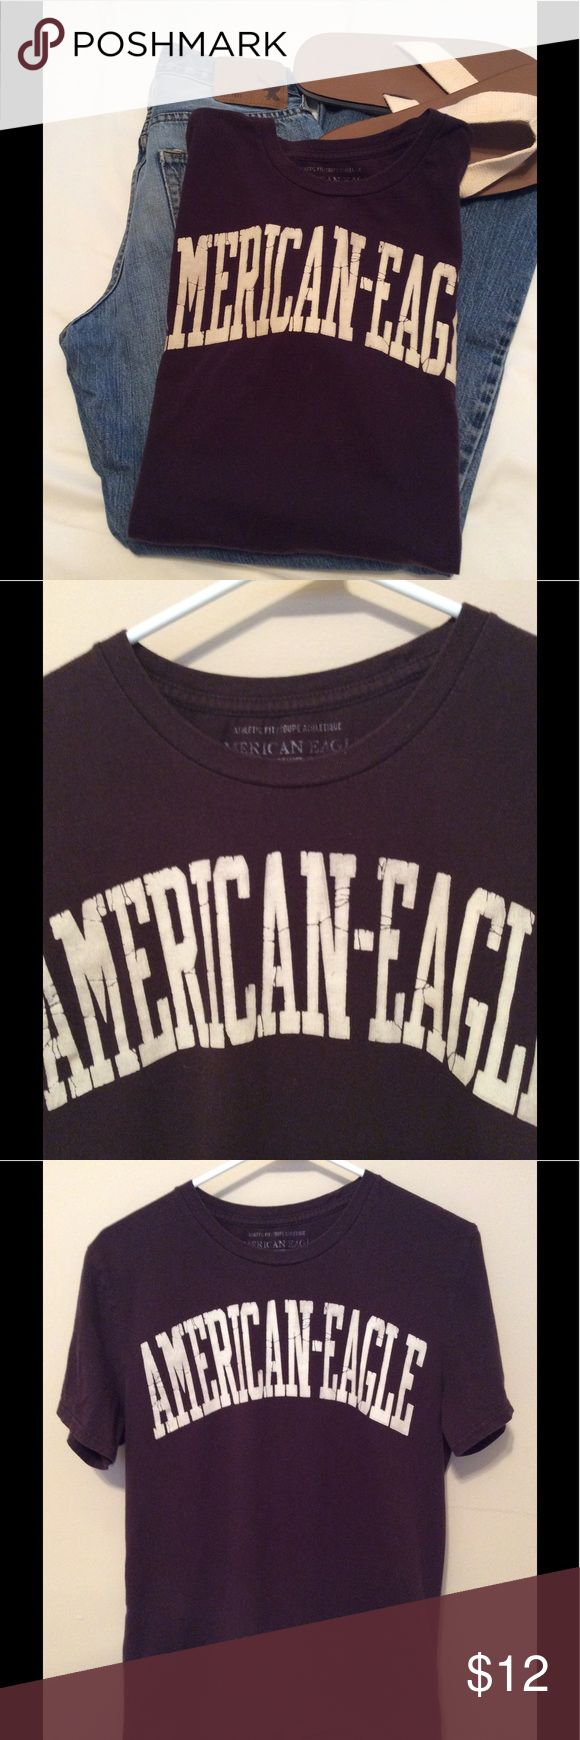 Men's American Eagle Shirt Sz M Nice tee from American Eagle. Fits small. Shows slight wear. American Eagle Outfitters Shirts Tees - Short Sleeve